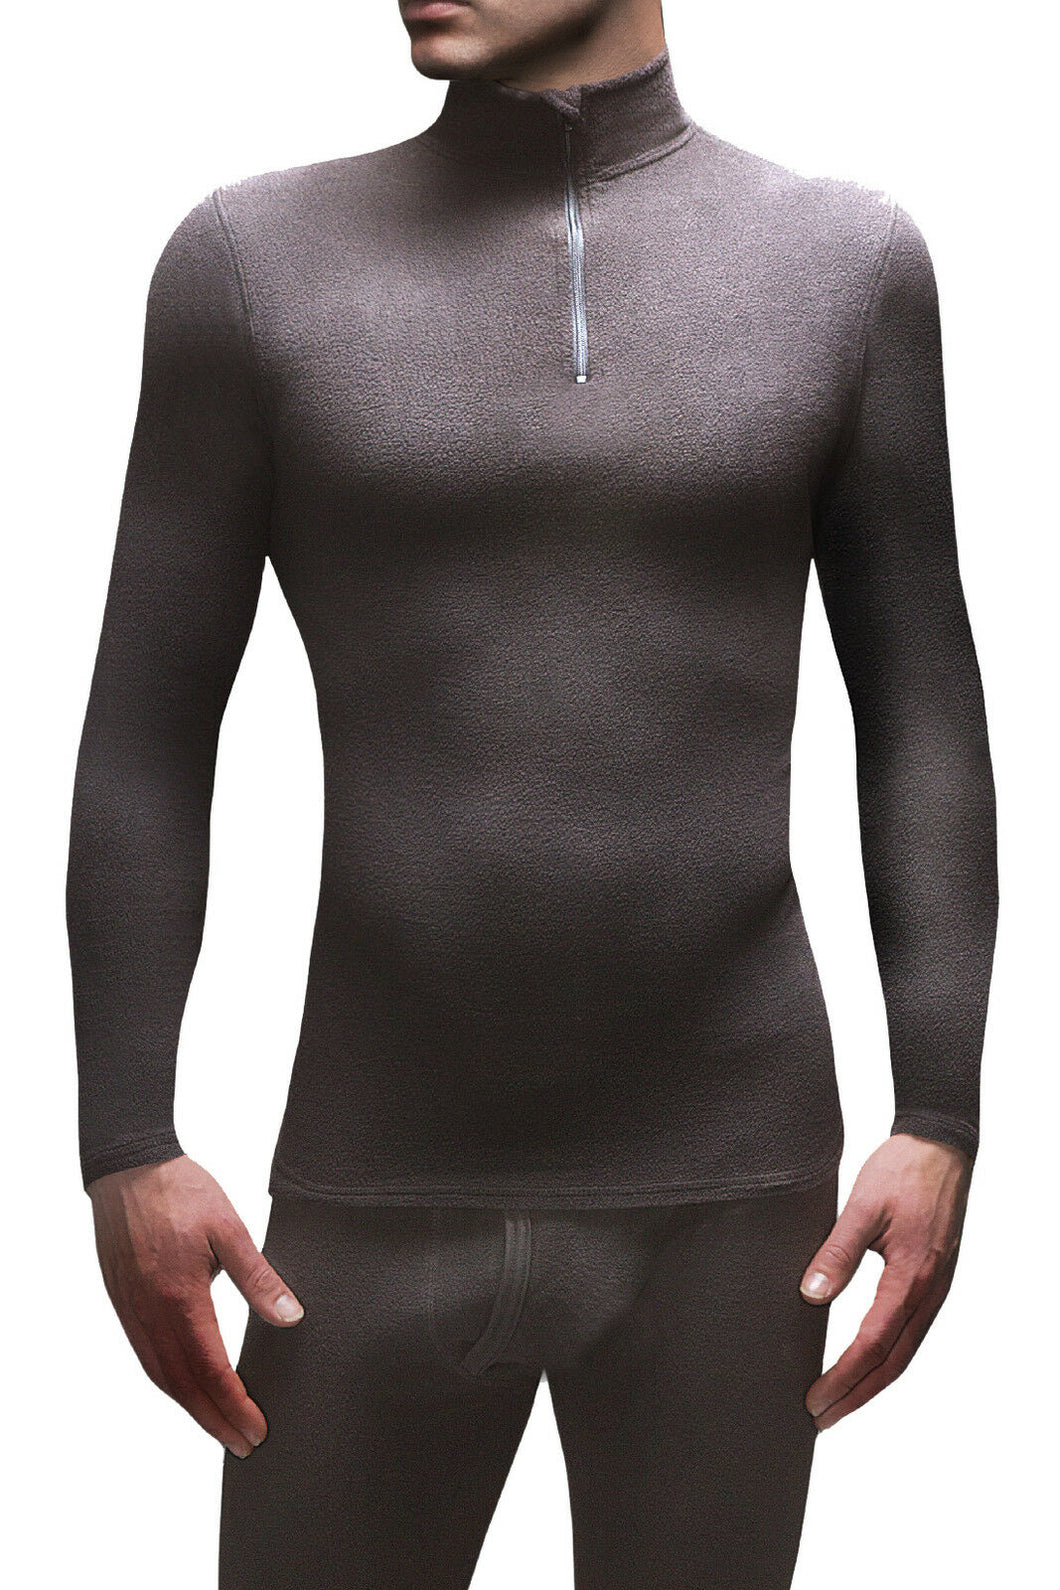 Mens Heat Holders Microfleece Baselayer Long Sleeved Top - 5 Sizes